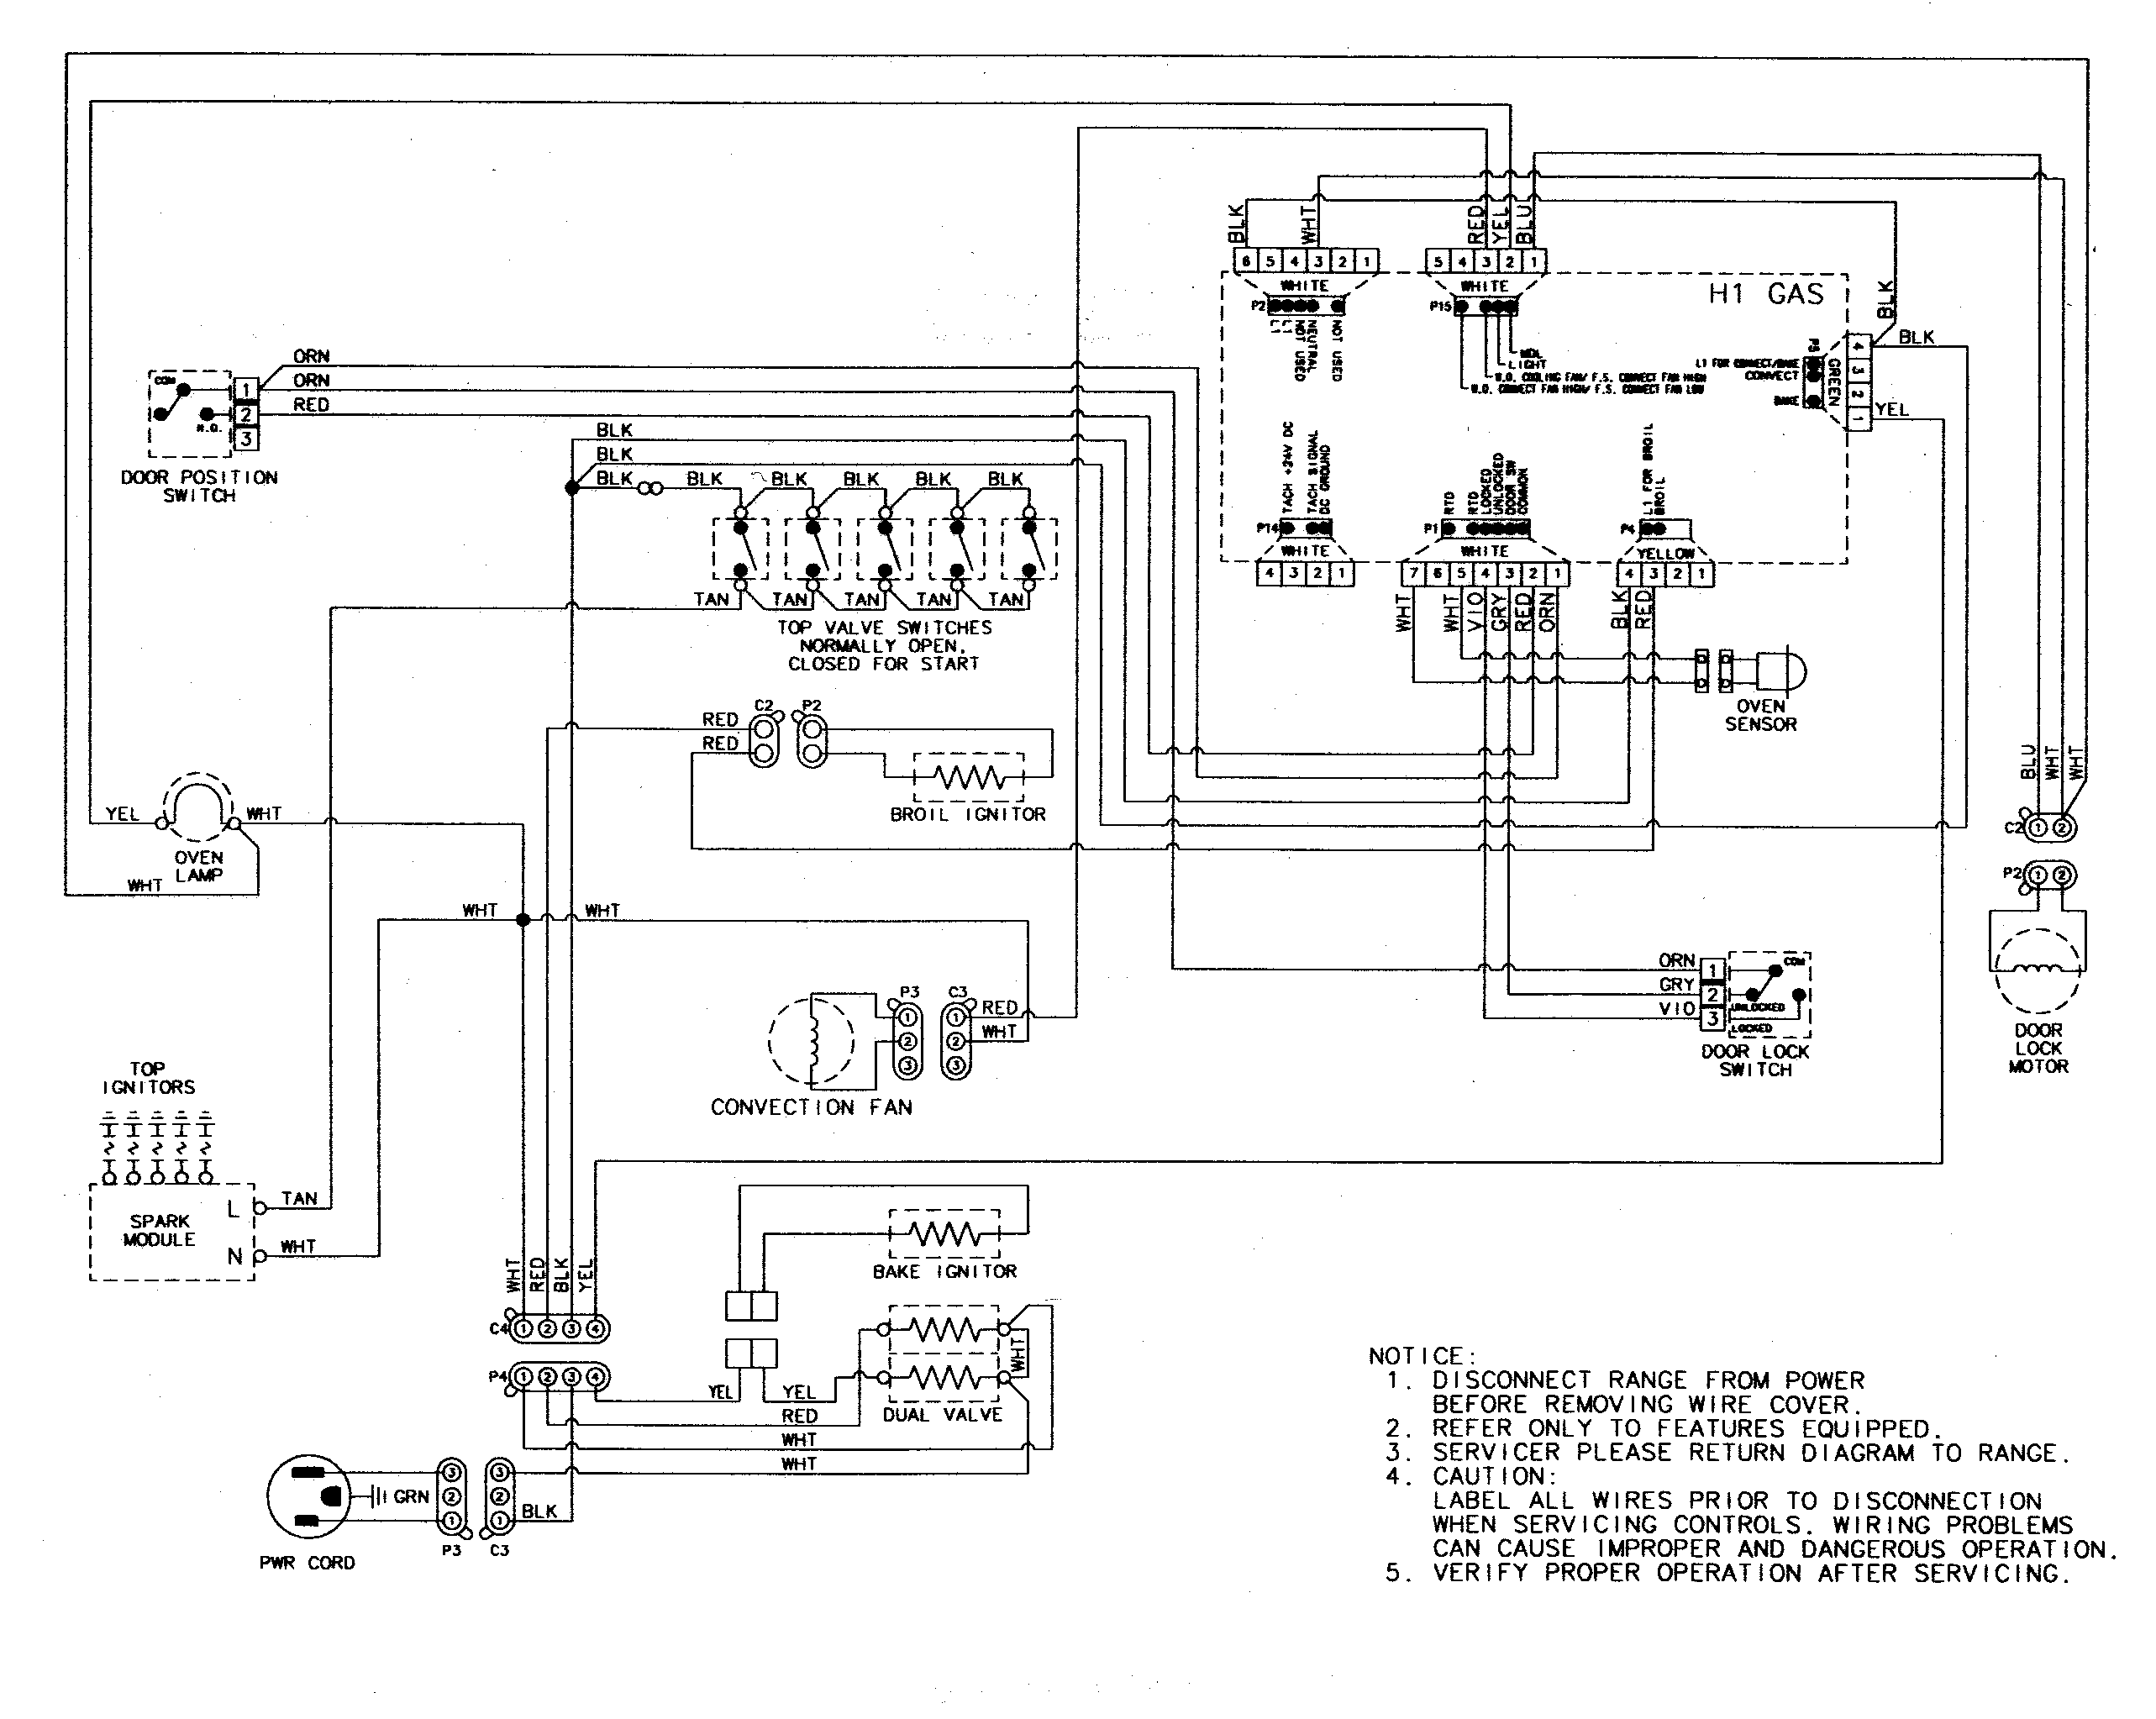 Ge jkp1 oven wiring diagram wiring diagram whirlpool range wiring diagram wiring diagrams instructions rh ww2 ww w freeautoresponder co ge appliance wiring diagrams electric oven wiring diagram swarovskicordoba